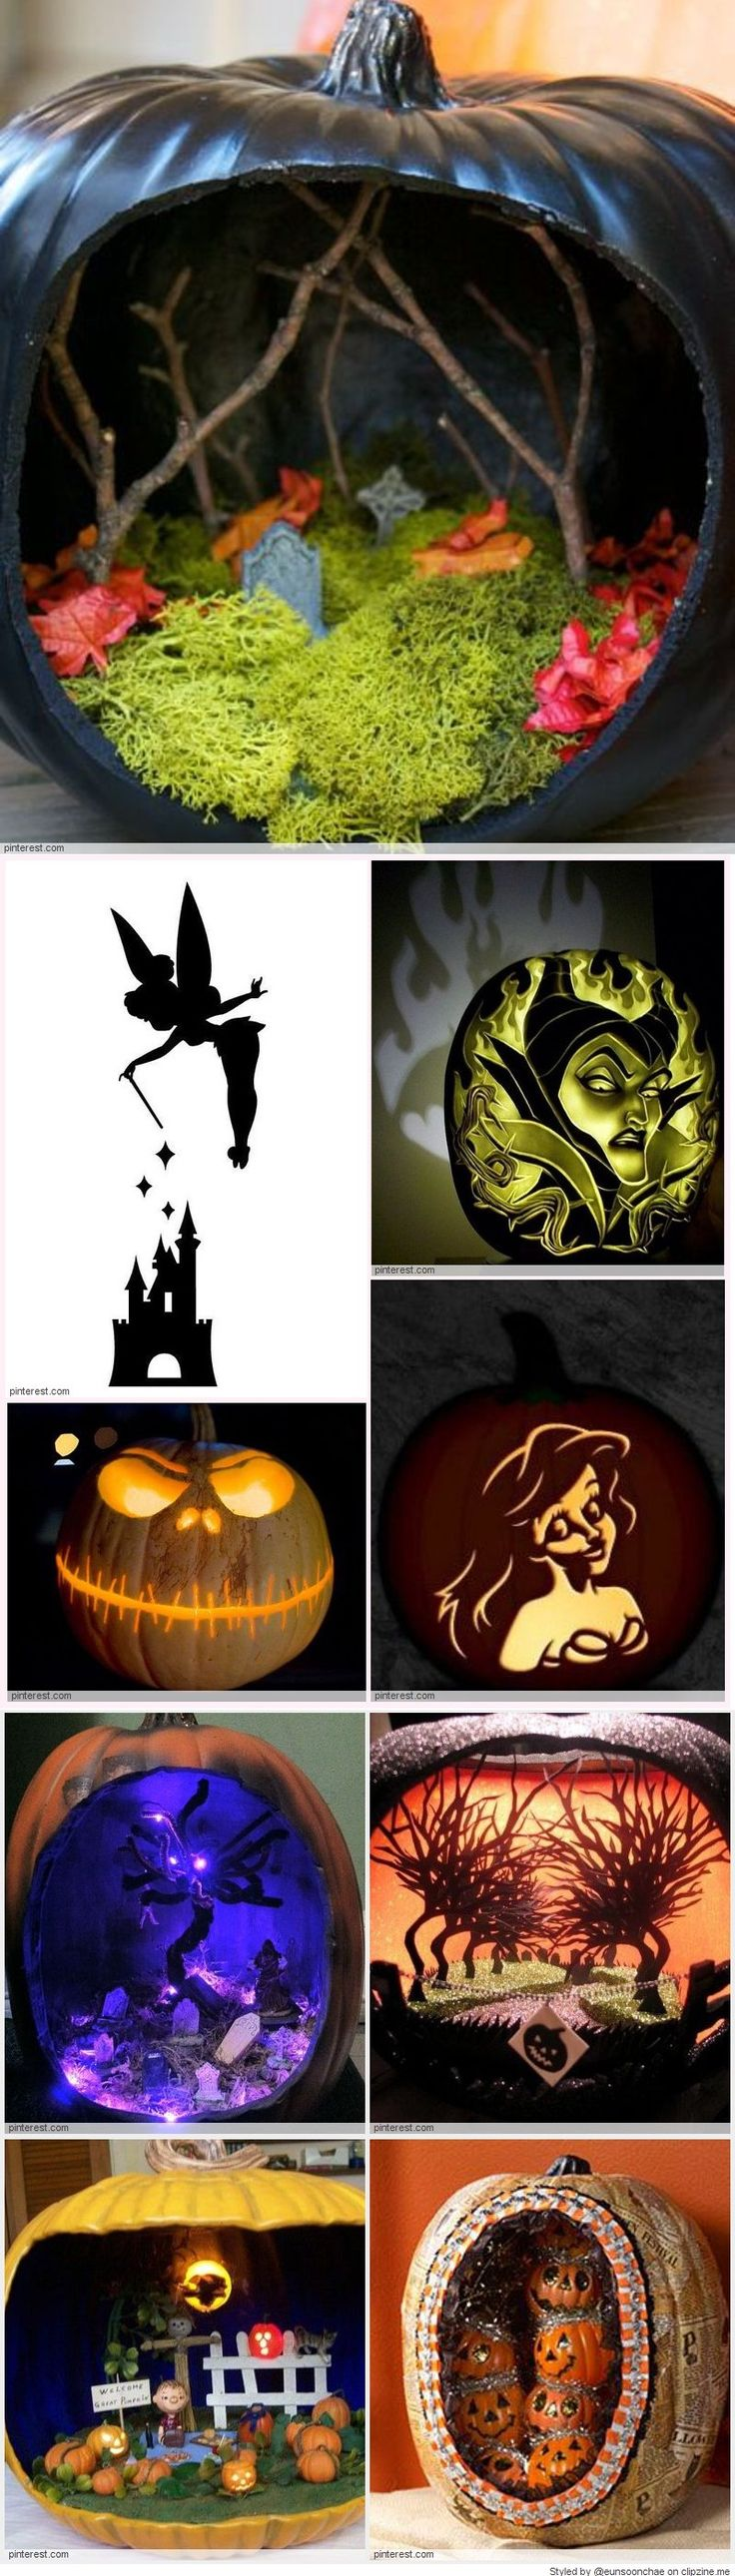 Best 25+ Cool pumpkin carving ideas on Pinterest | Halloween ...